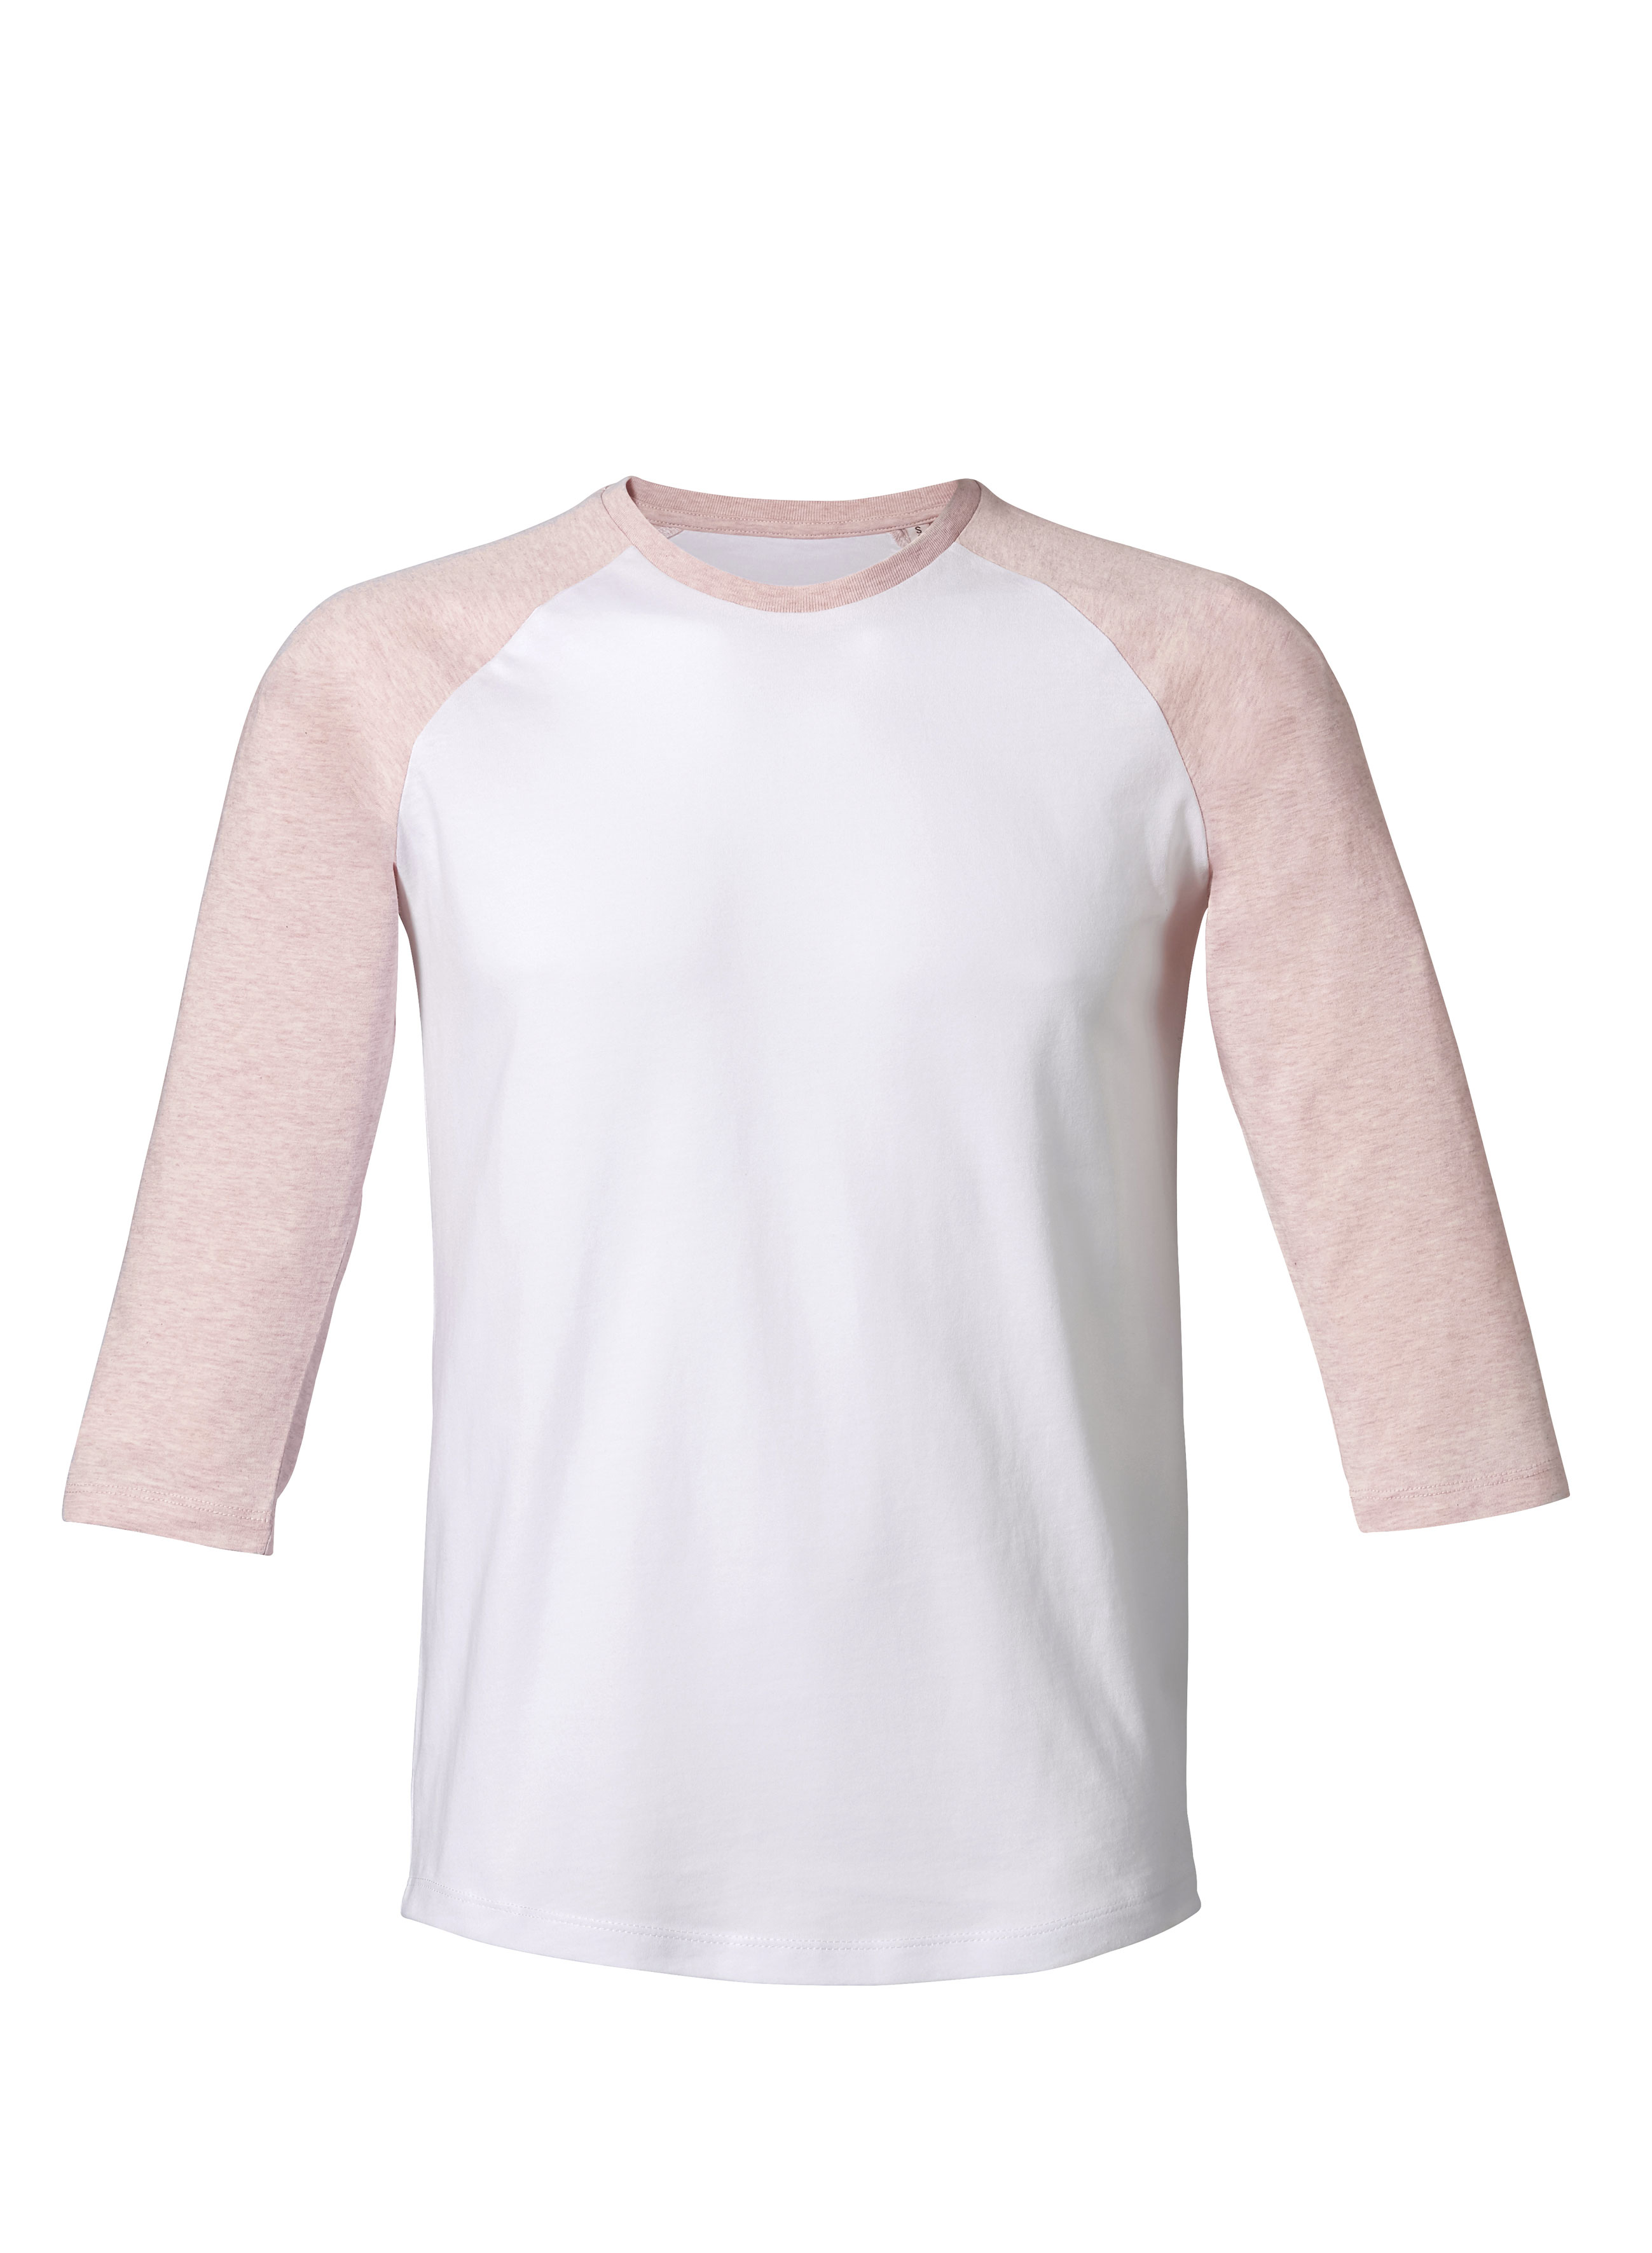 white - cream heather pink